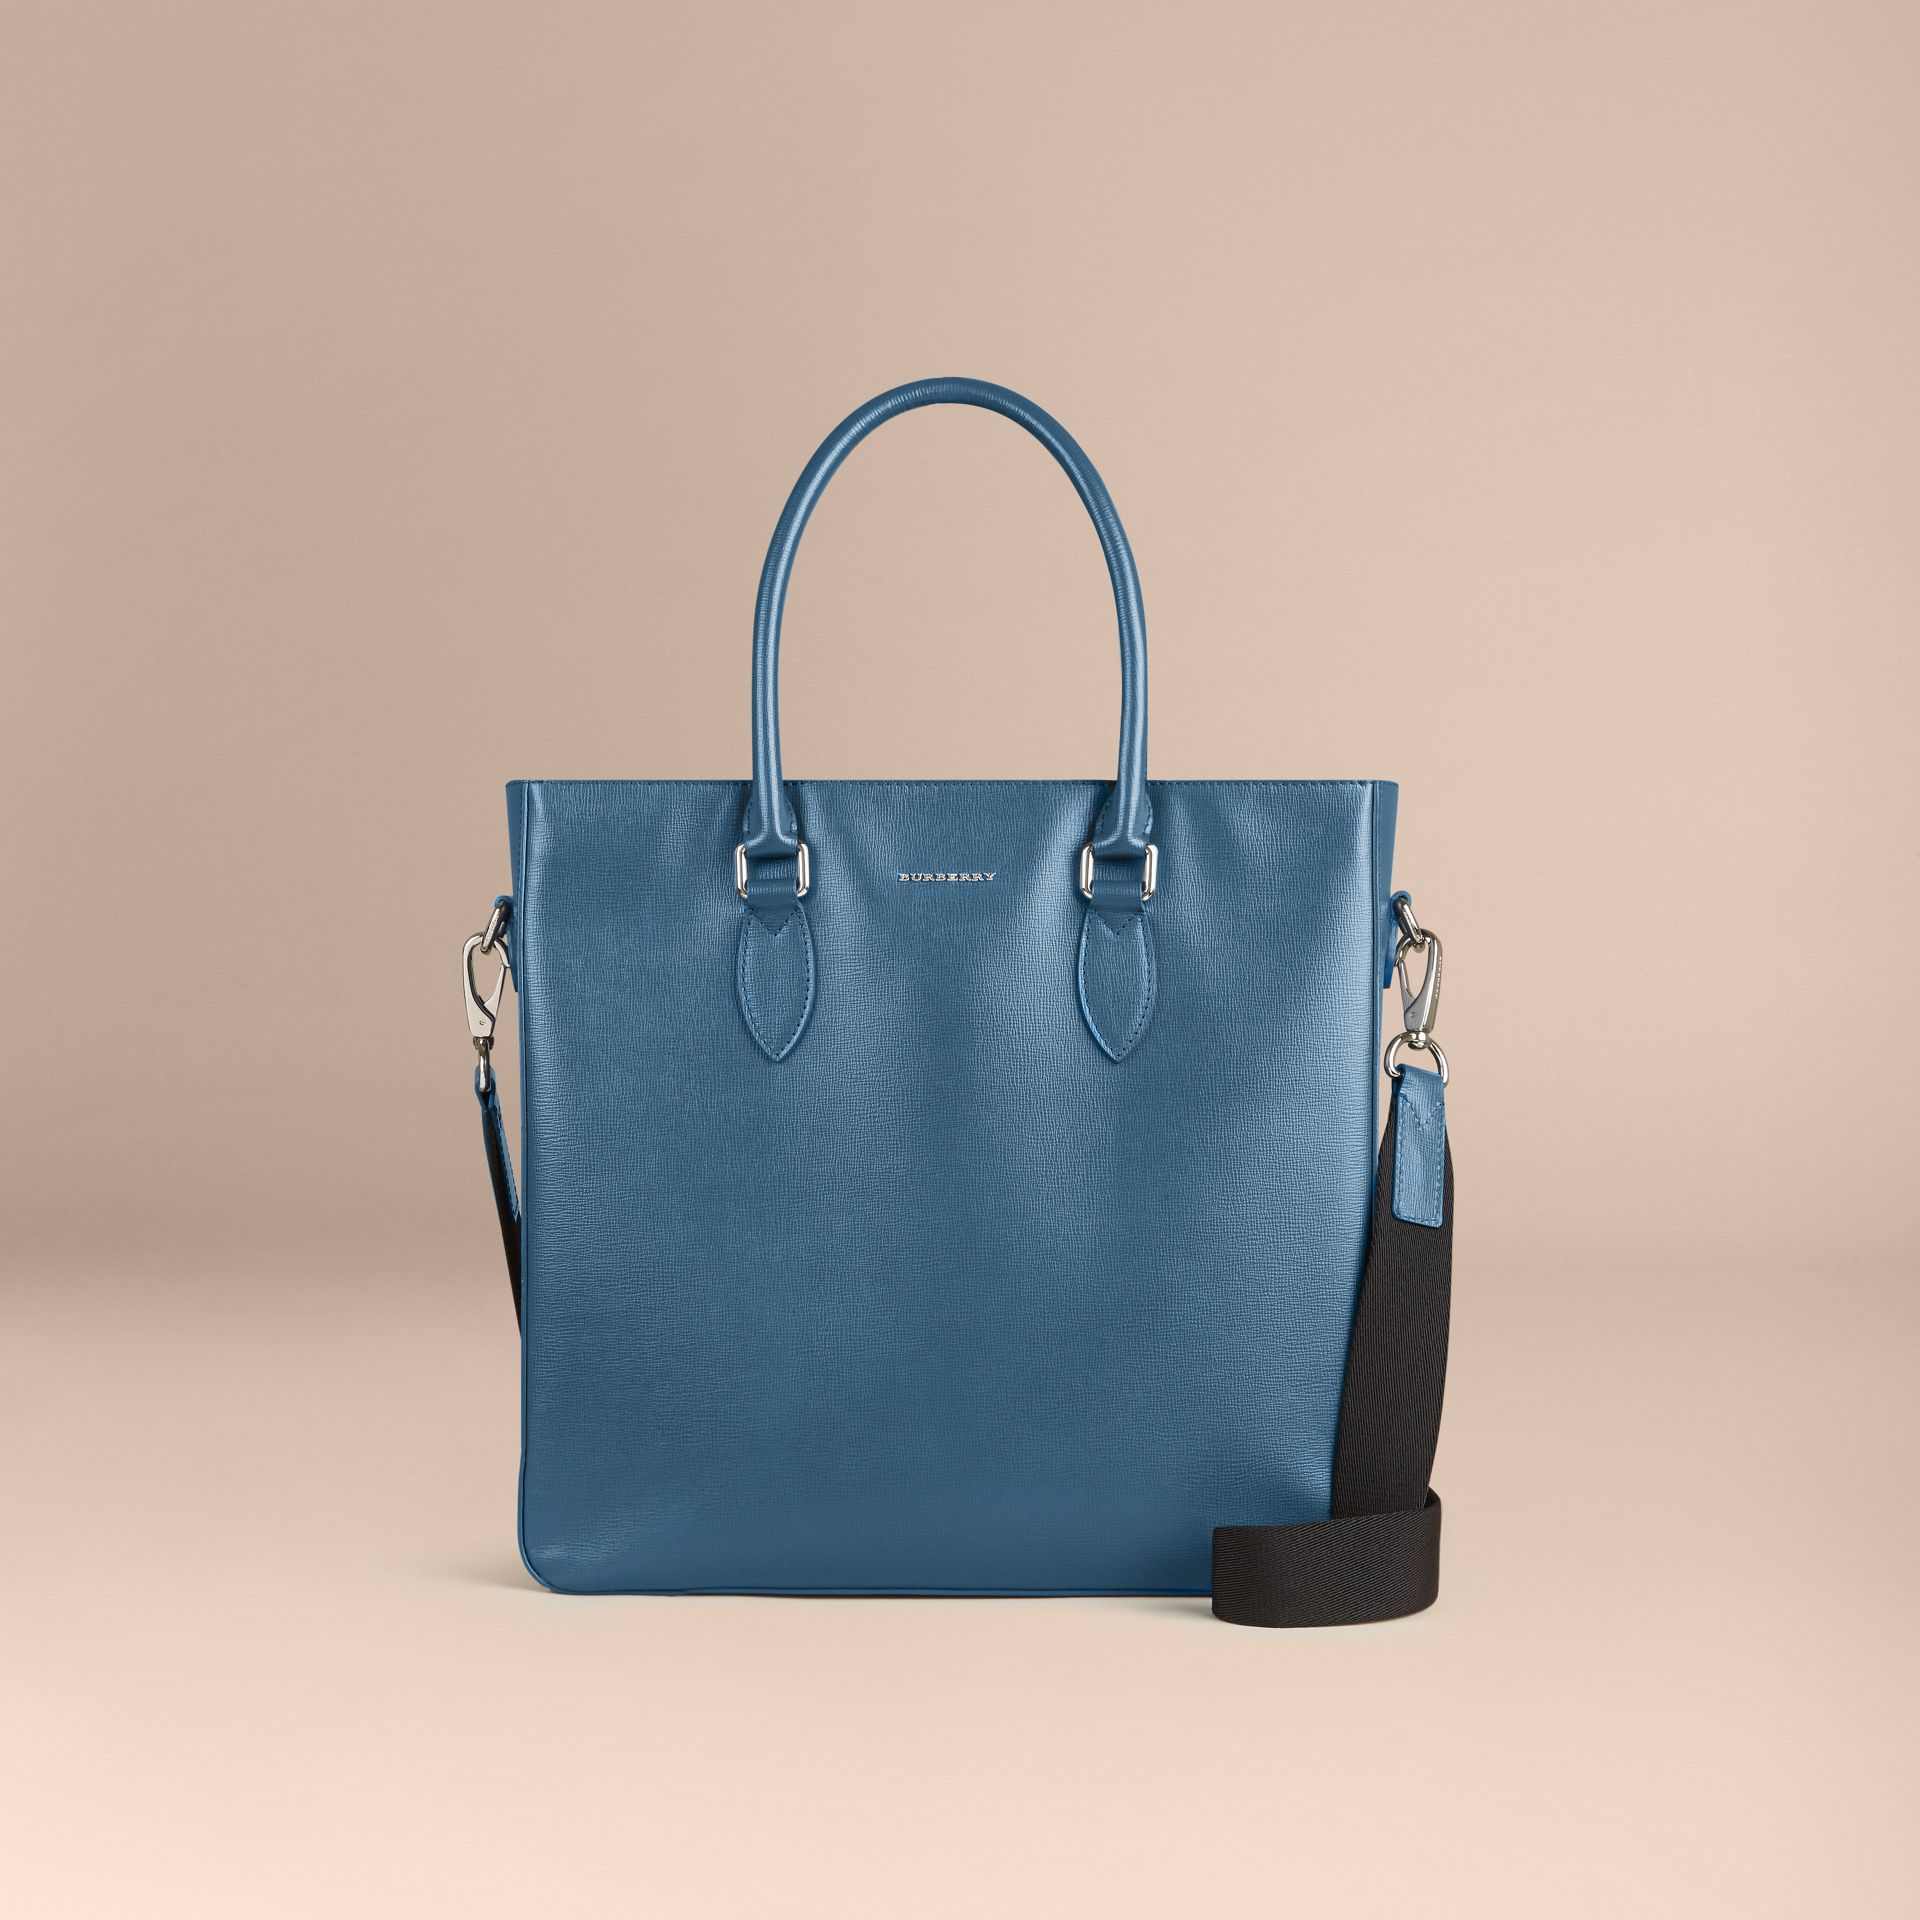 London Leather Tote Bag in Mineral Blue - Men | Burberry - gallery image 7